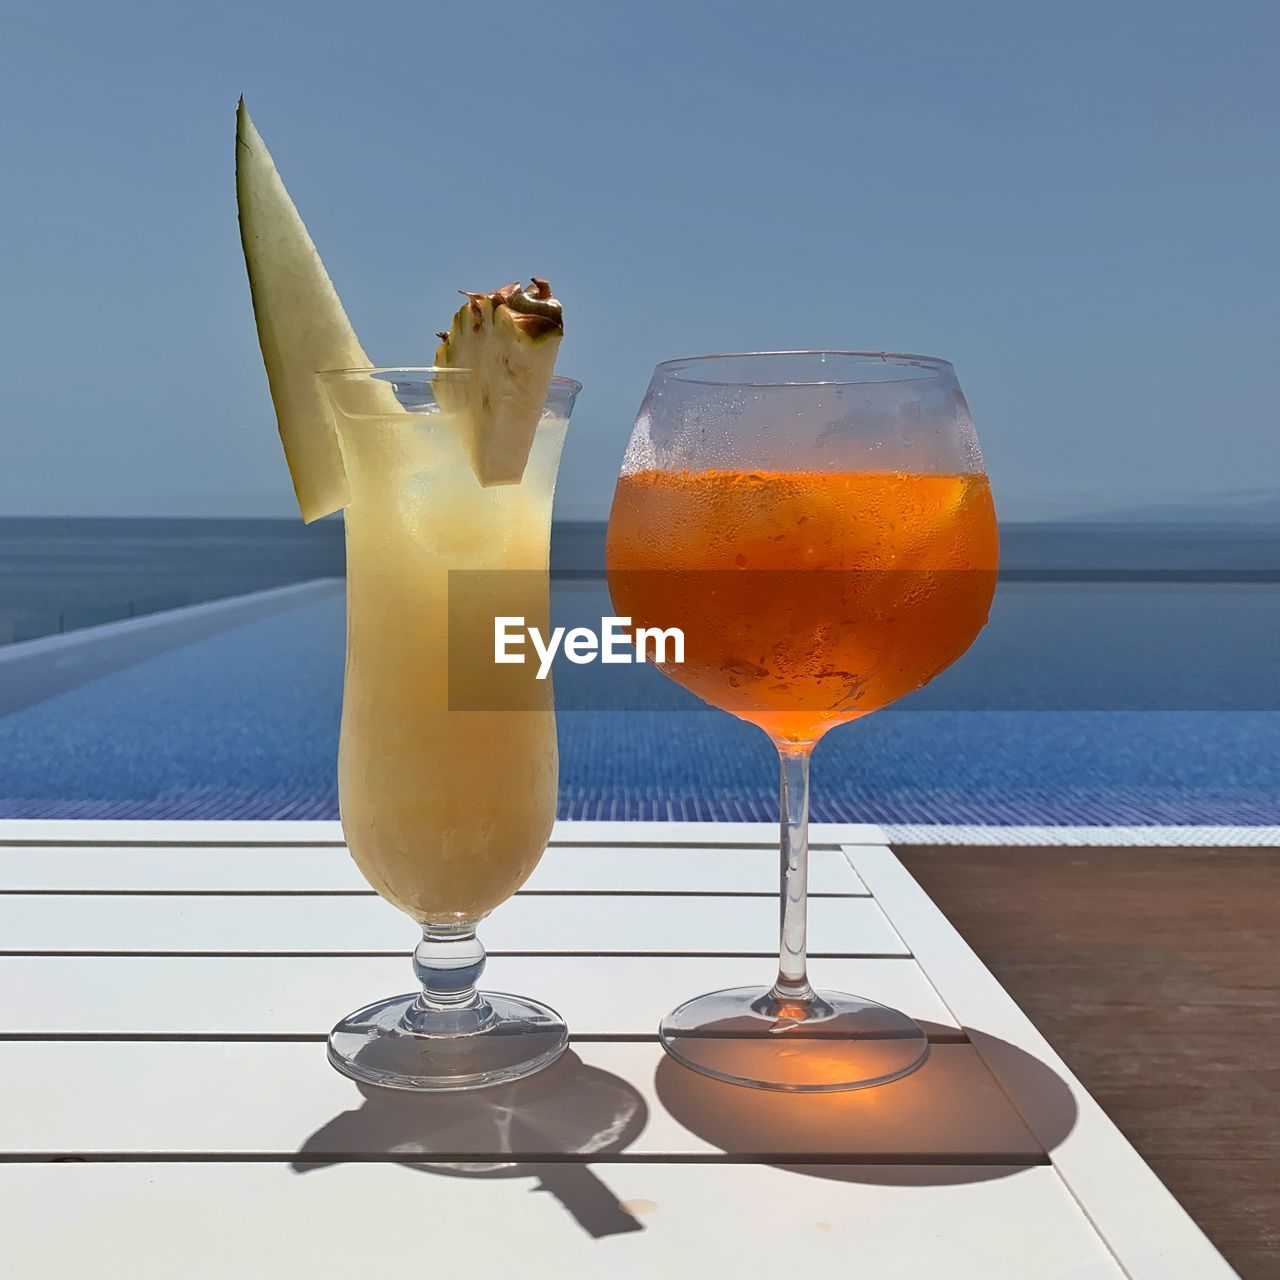 CLOSE-UP OF DRINK ON TABLE AGAINST SEA AND SKY